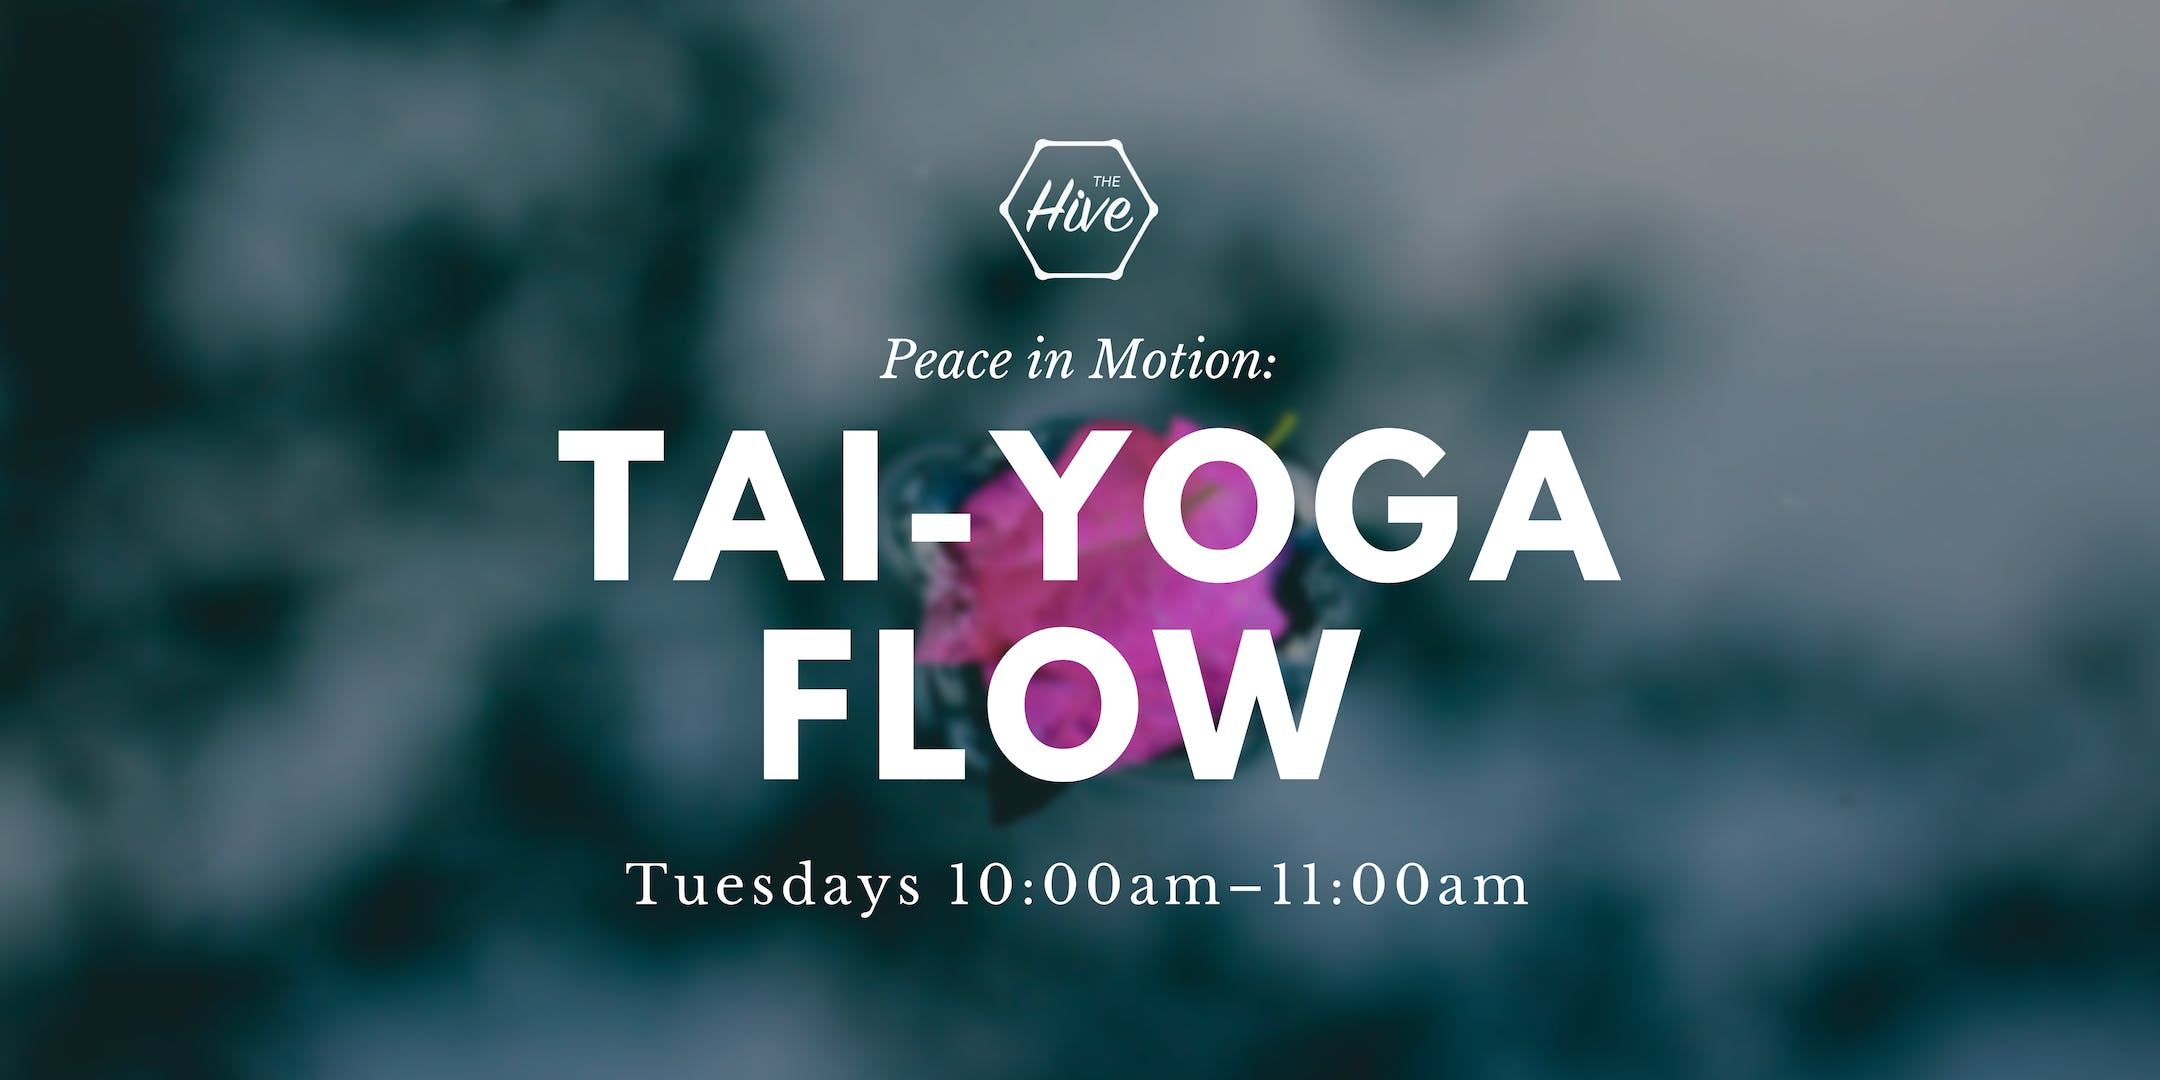 Peace in Motion: A TAI-YOGA FLOW